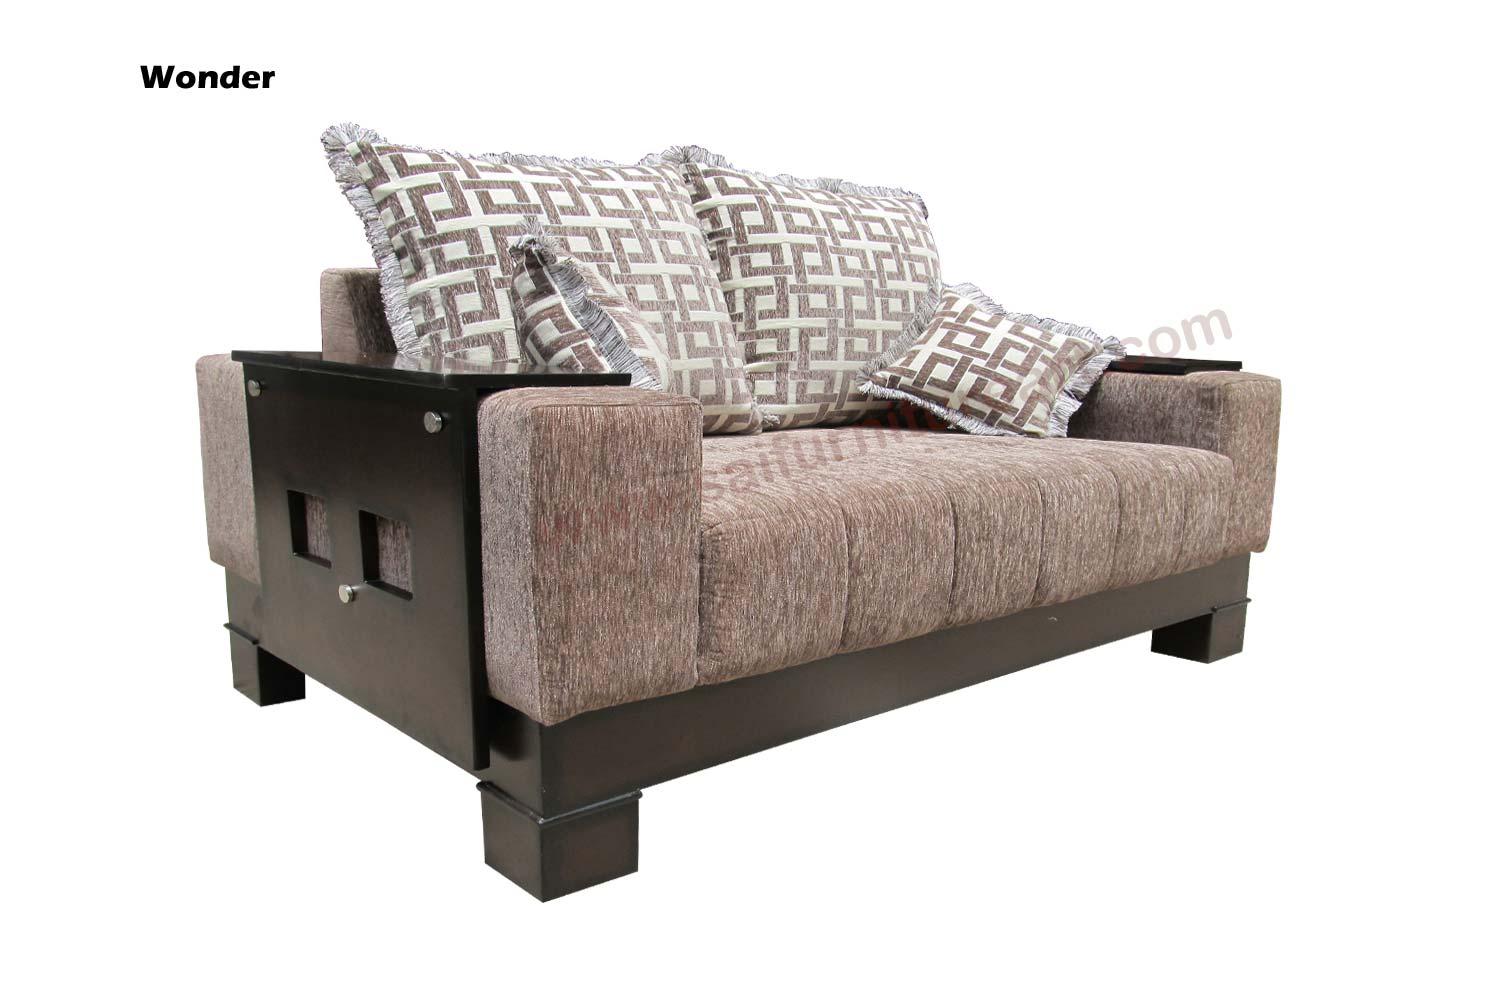 Sofa Set Offers In Mumbai Buy Wonder Sofa Set Online Store Kirti Nagar Wonder Sofa Set